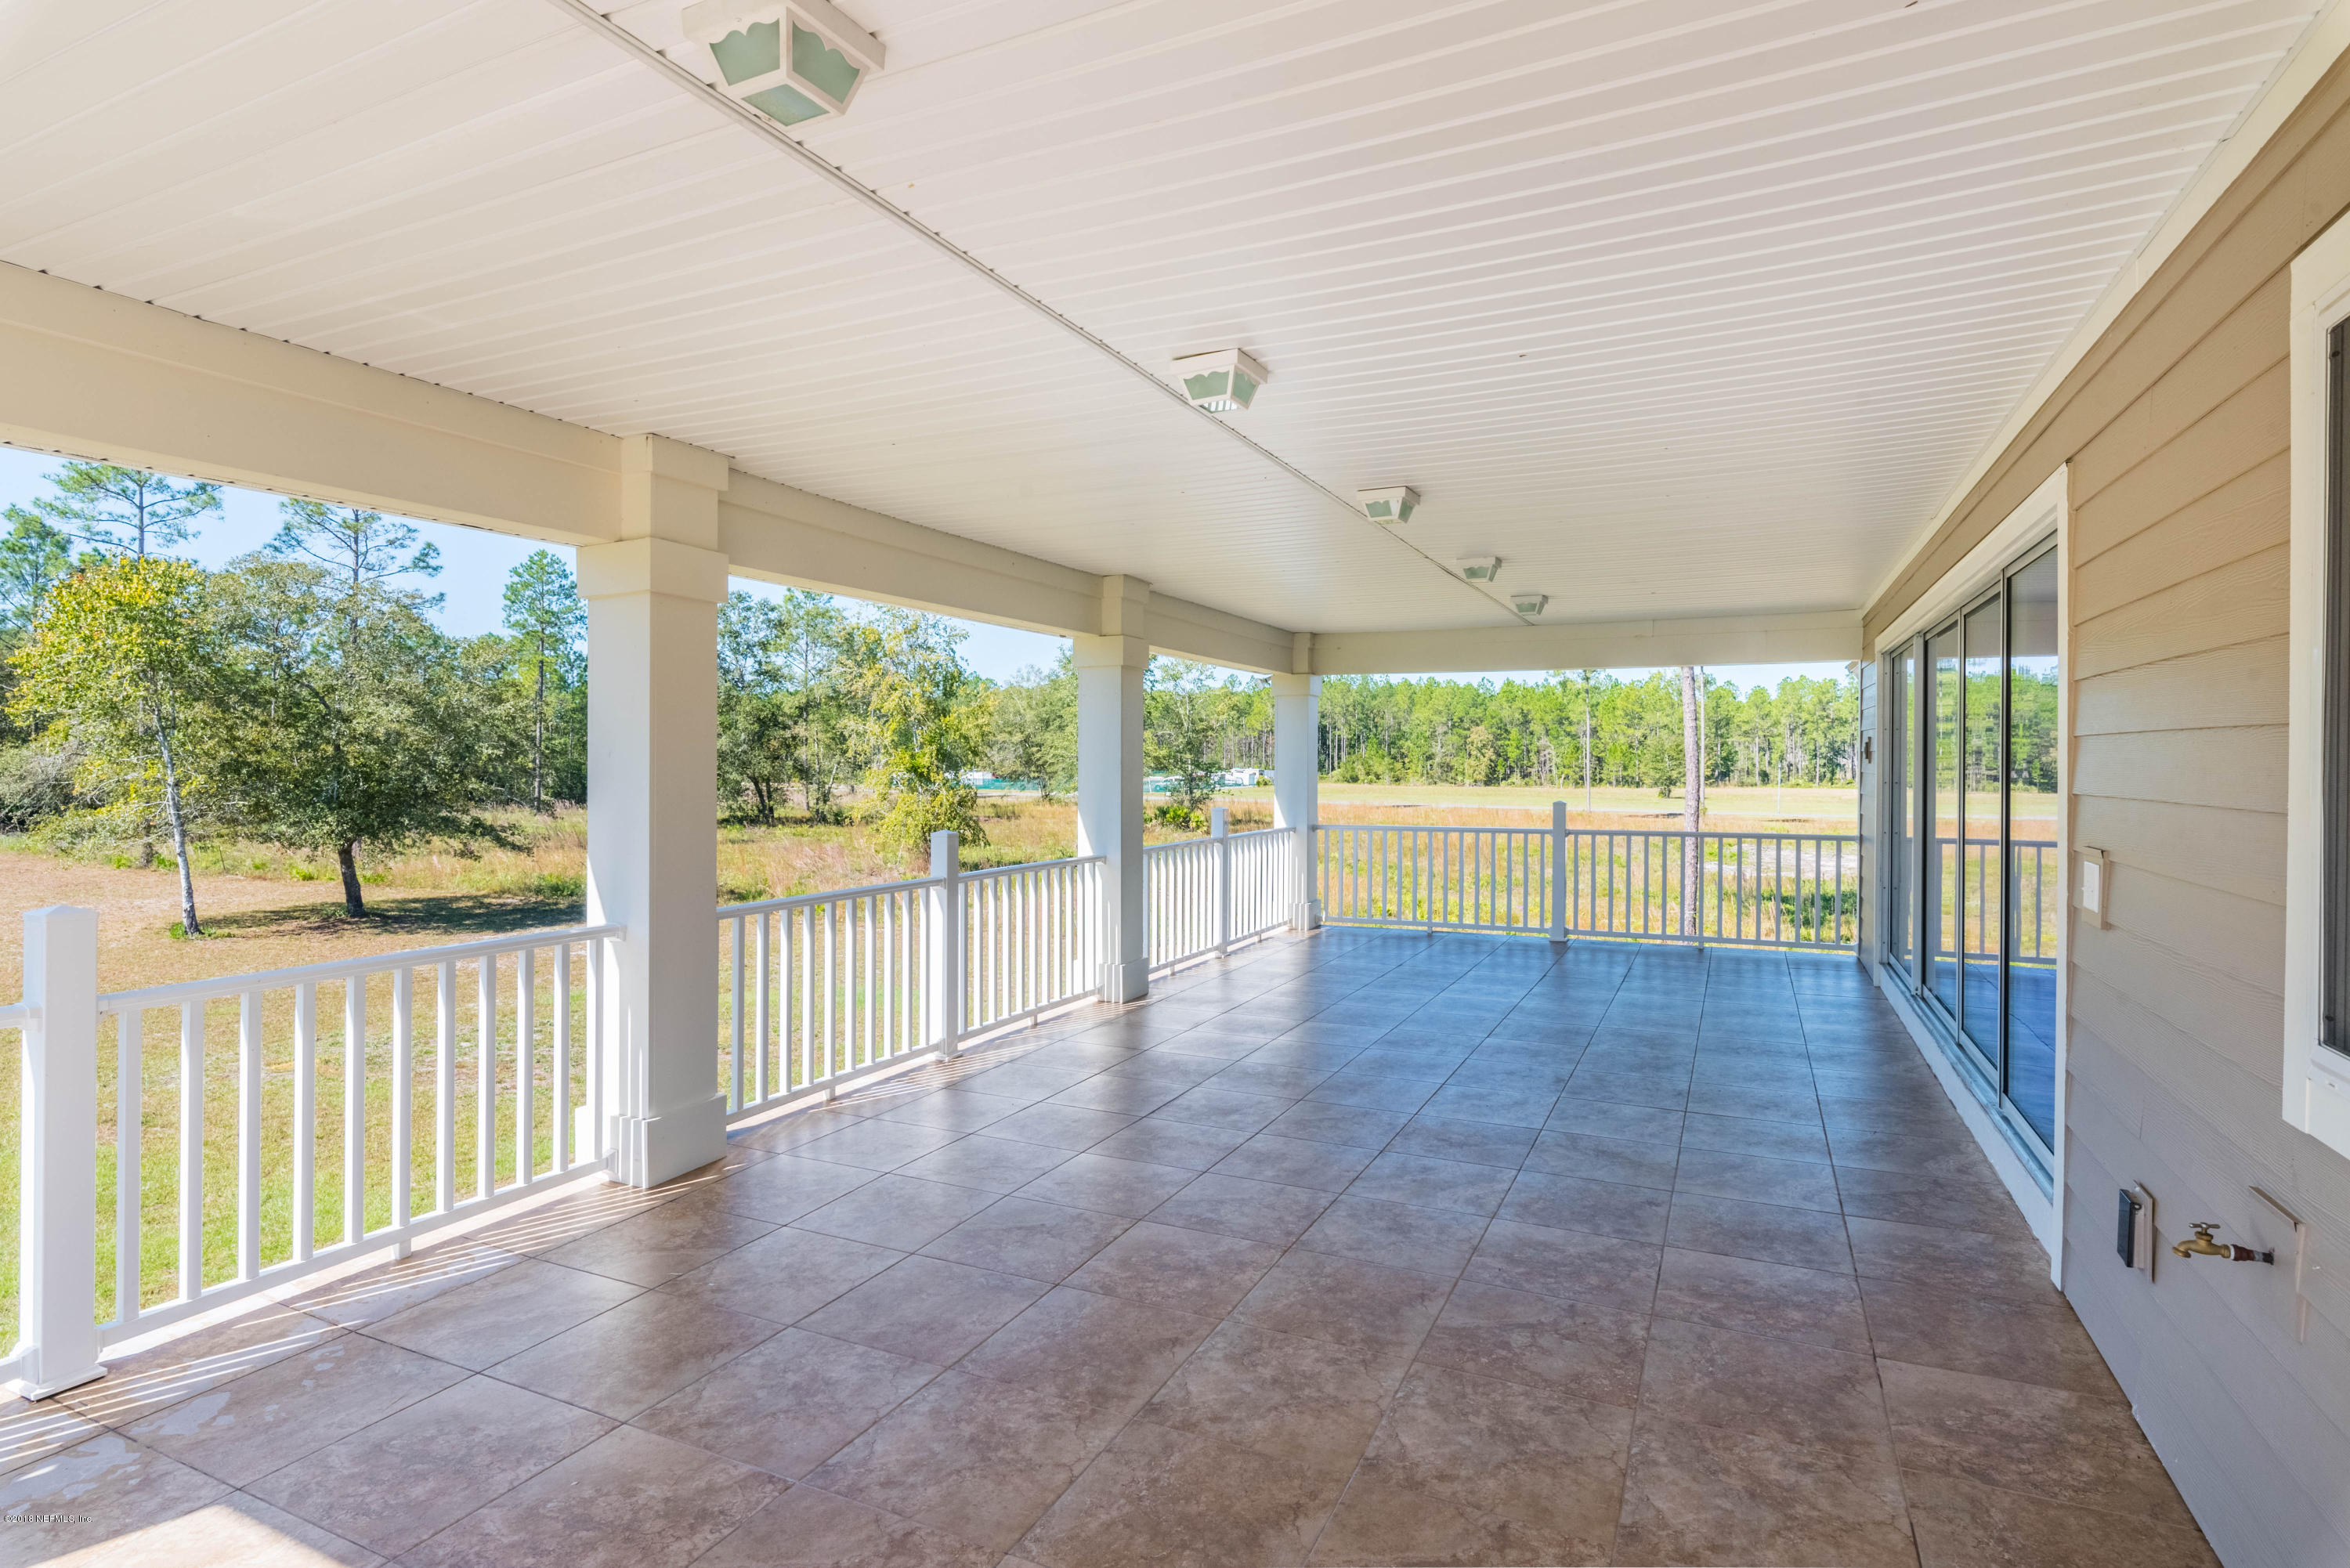 10984 PADDINGTON, JACKSONVILLE, FLORIDA 32219, 4 Bedrooms Bedrooms, ,3 BathroomsBathrooms,Residential - single family,For sale,PADDINGTON,965415